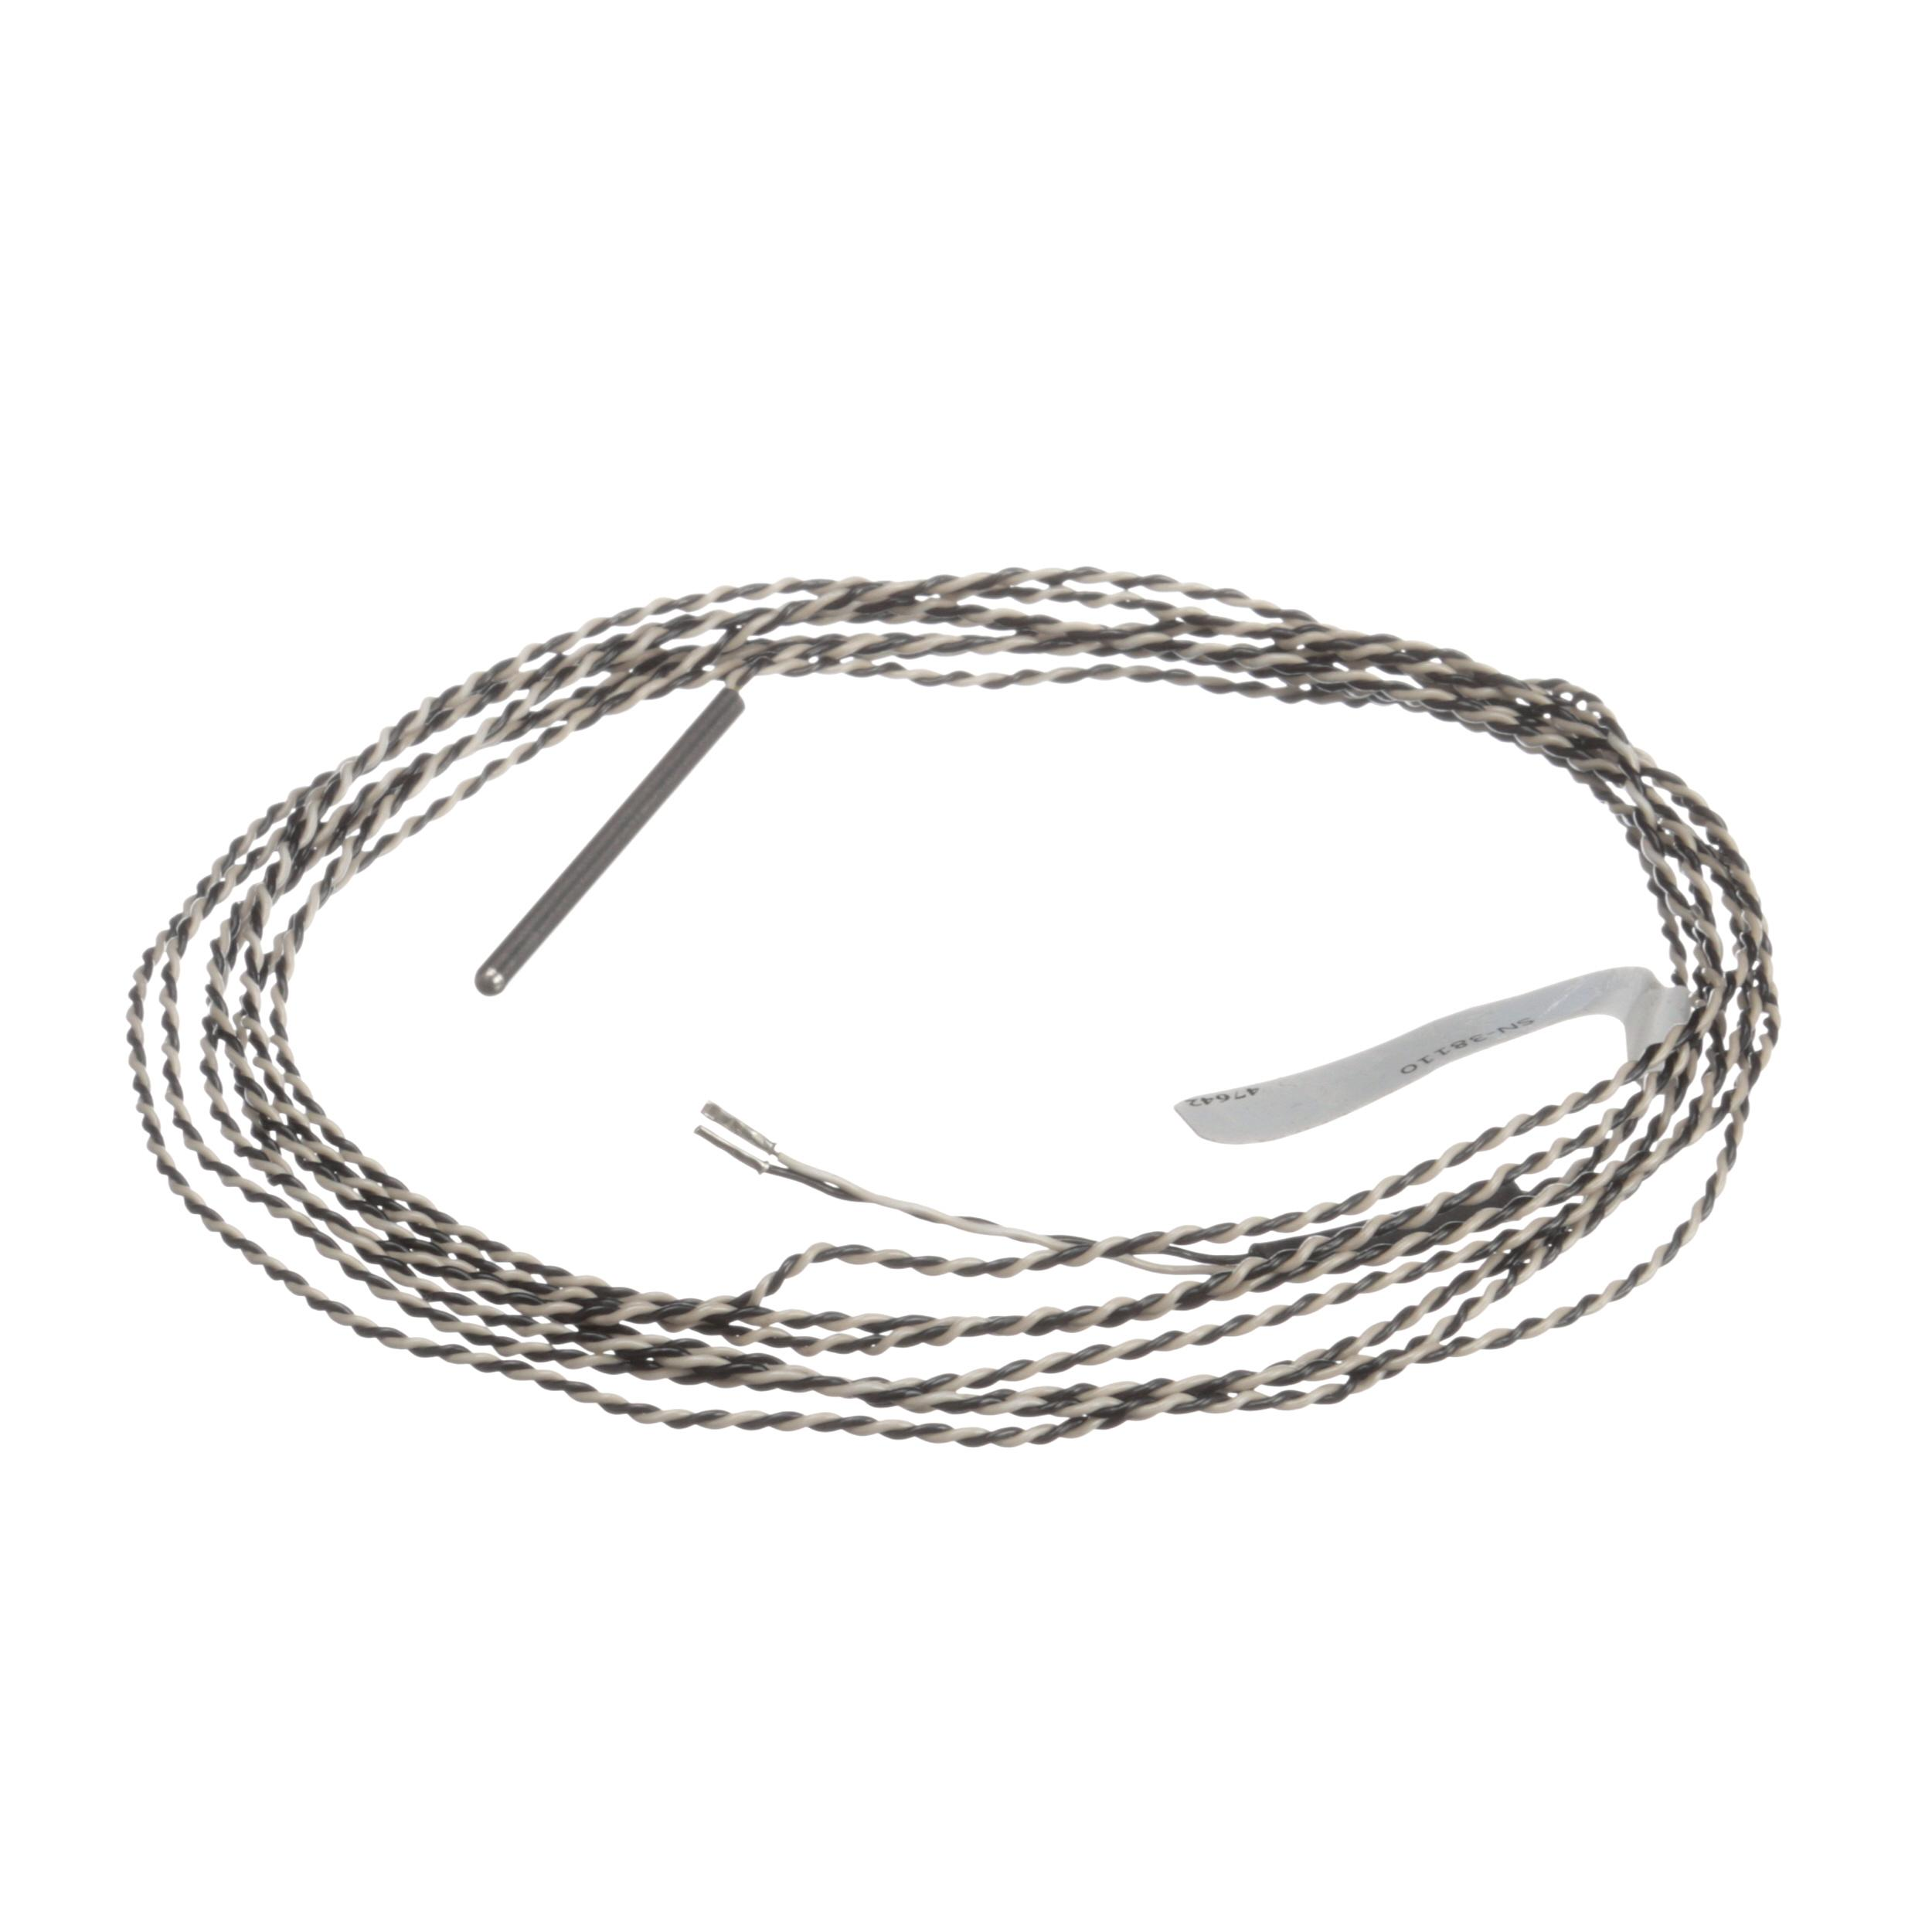 Alto Shaam Sensor 100 Ohm 110 Wire With